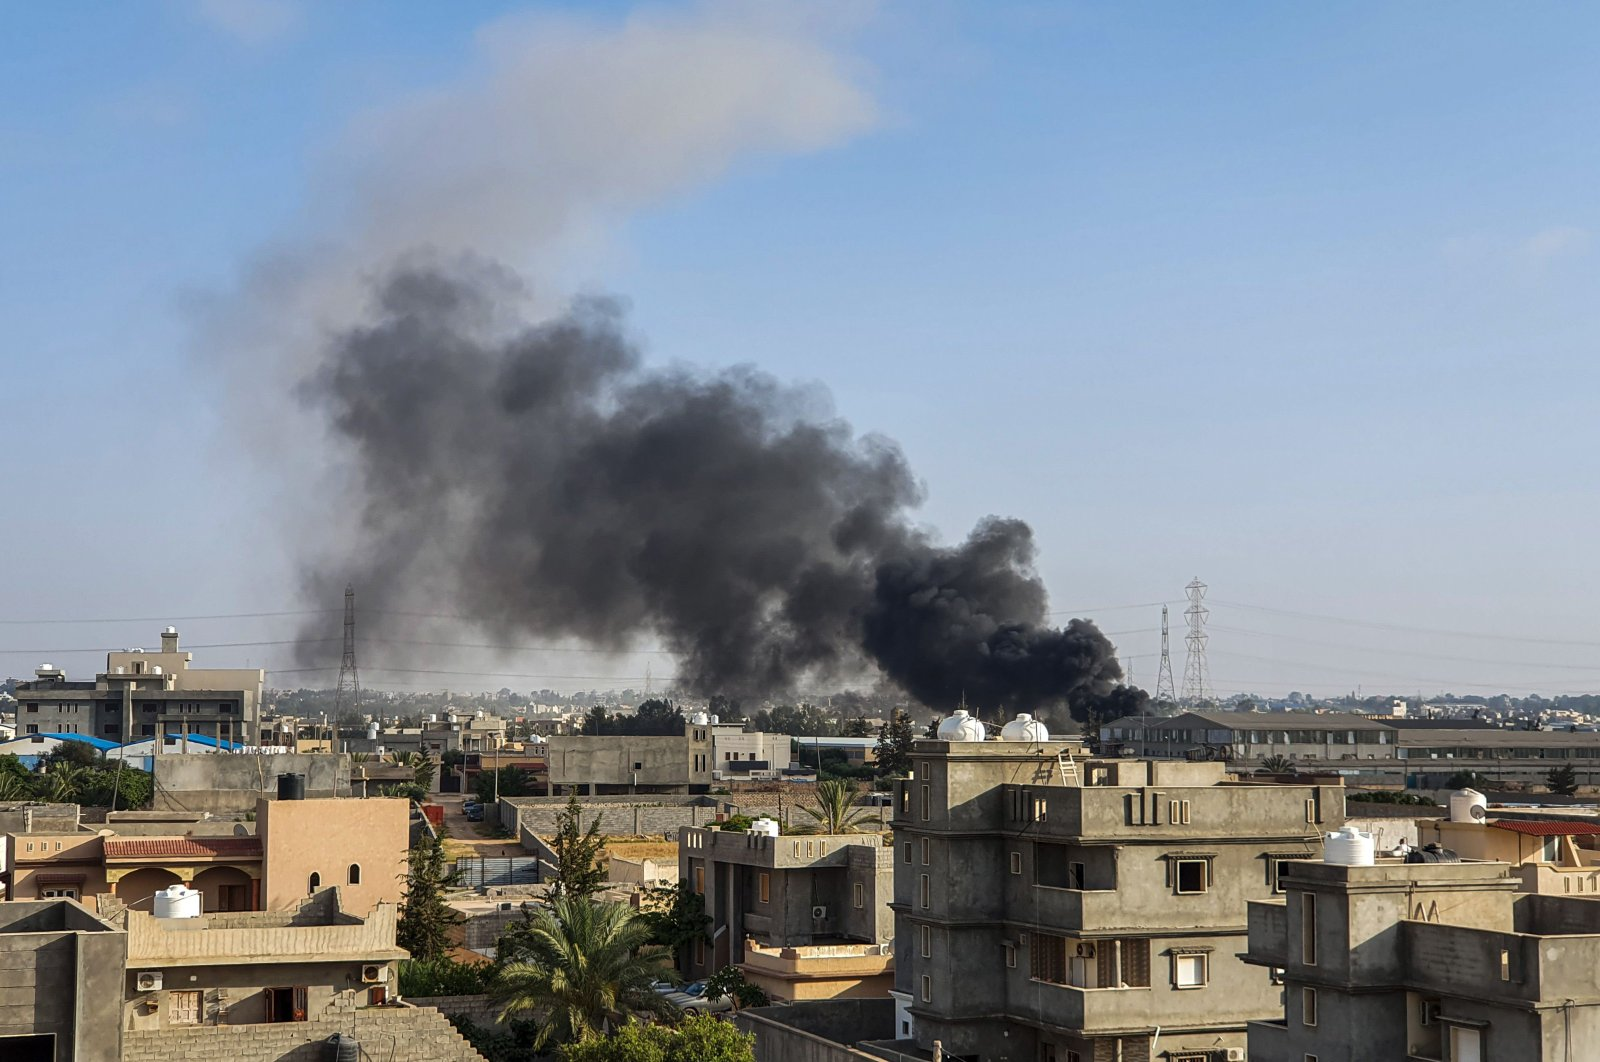 Smoke plumes rise following a reported airstrike by forces loyal to putschist Gen. Khalifa Haftar in Tajoura, south of the capital Tripoli, Libya, June 29, 2019. (AFP File Photo)